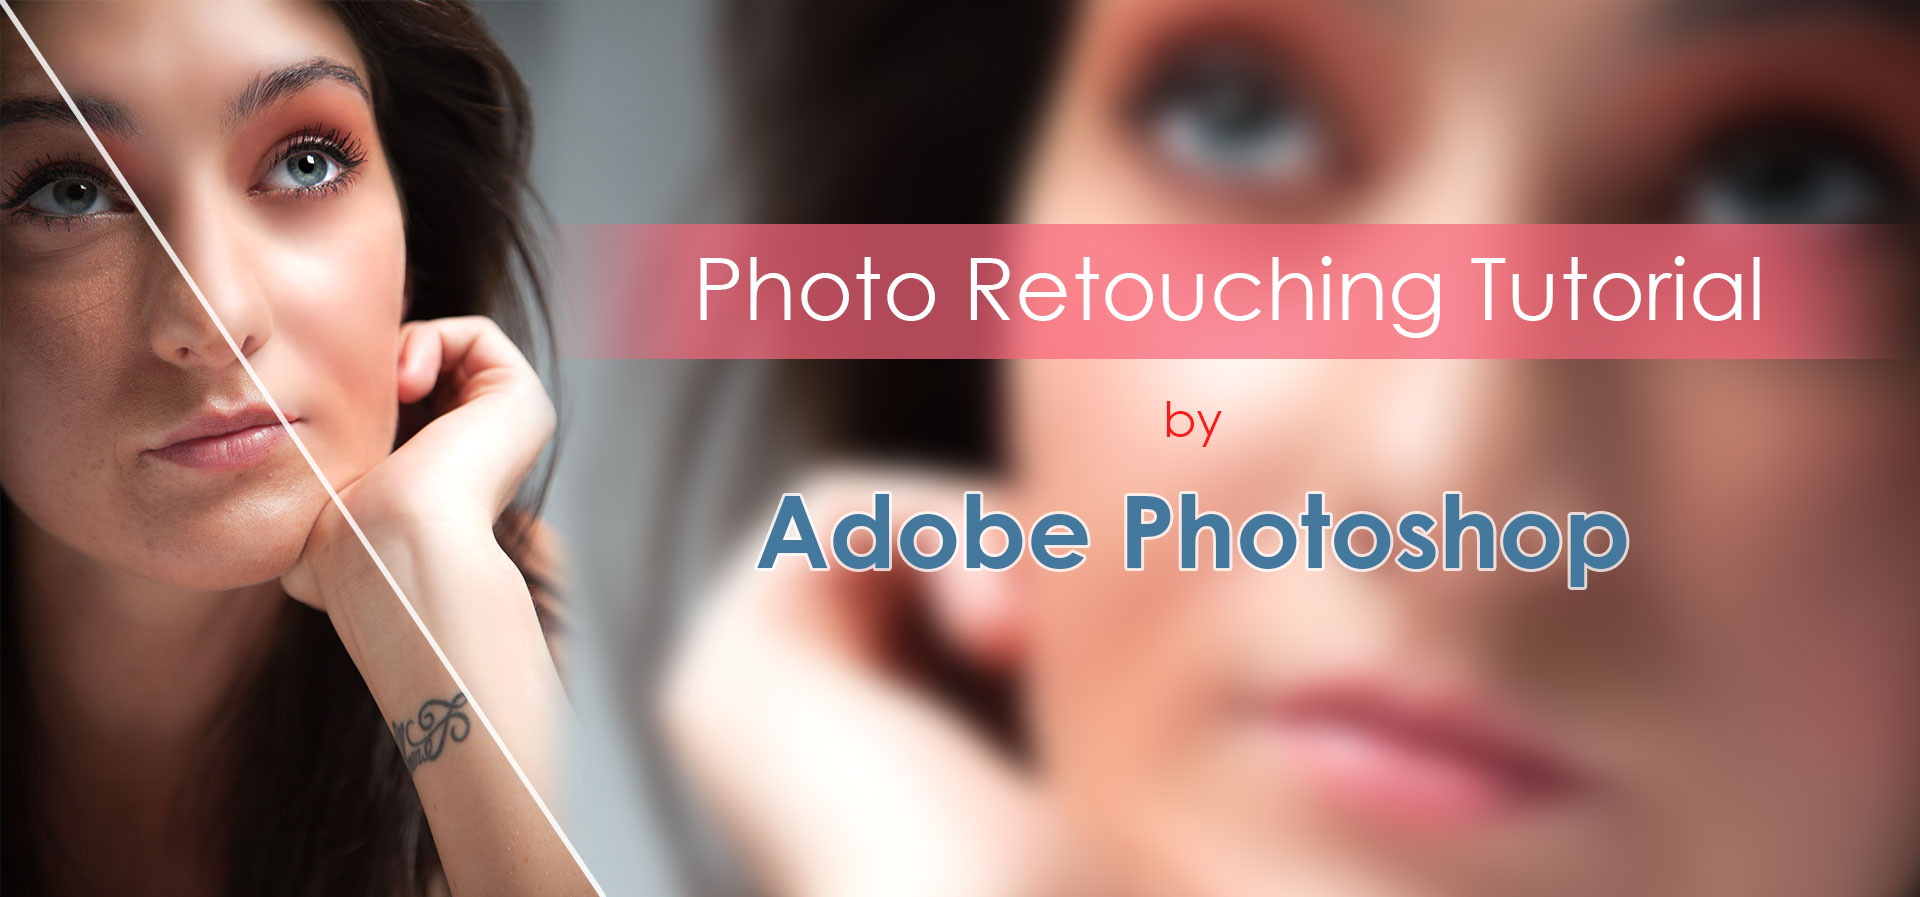 Photo-Retouching-Tutorial-by-Adobe-Photoshop